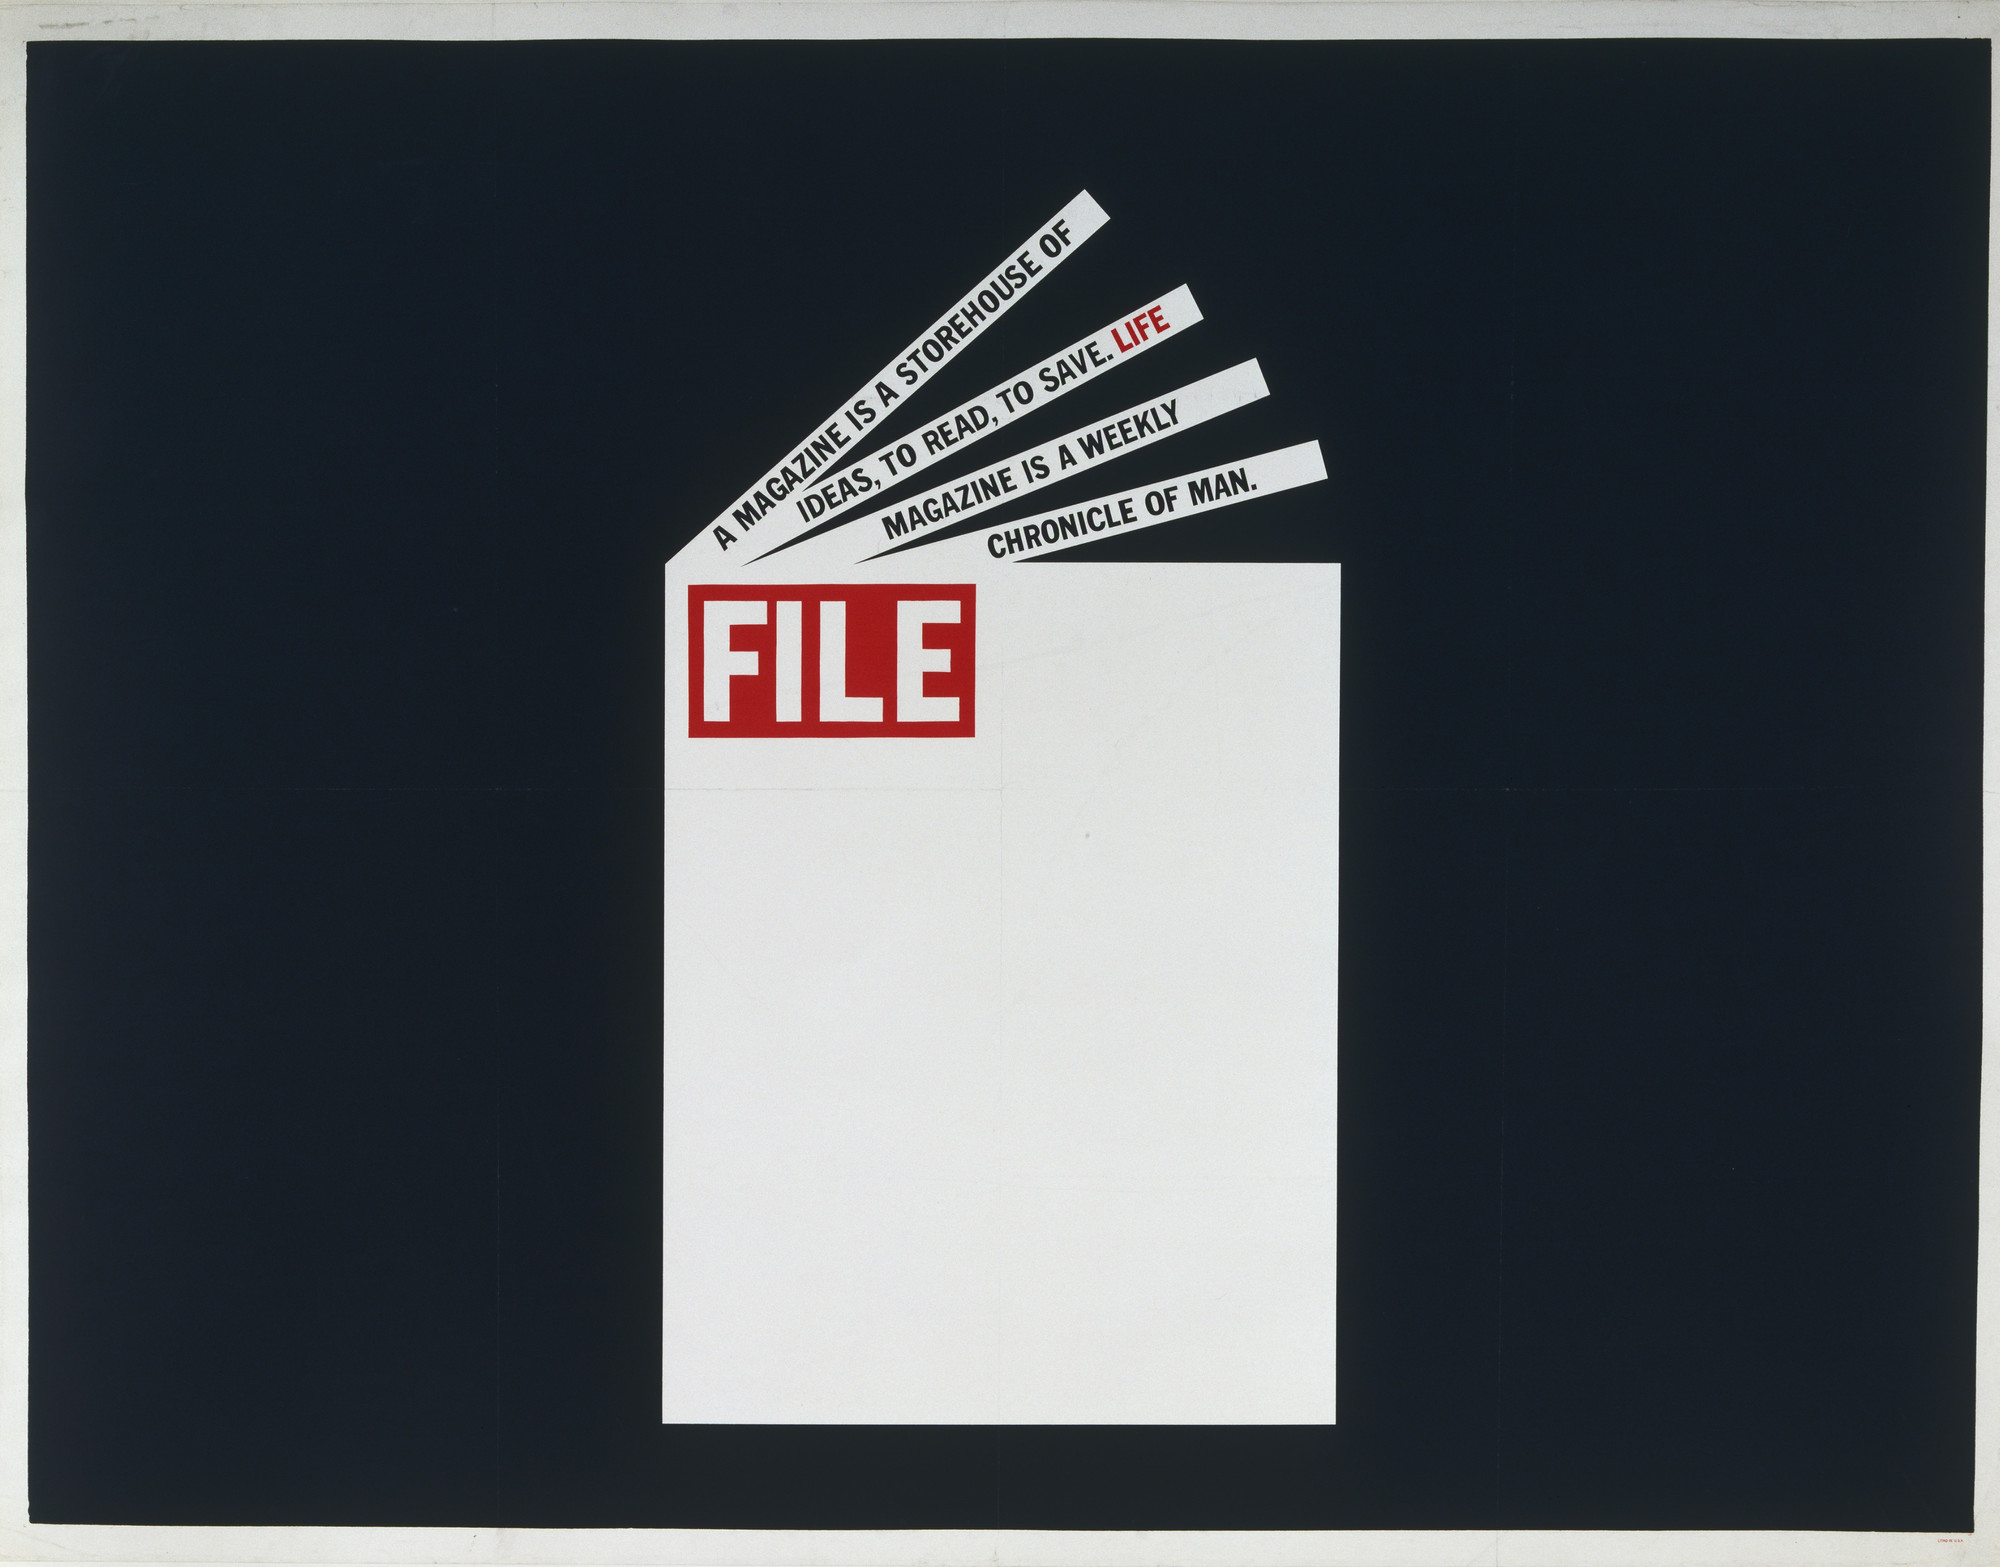 Dennis Wheeler. FILE- A Magazine is a Storehouse of Ideas, To Read, To Save. LIFE Magazine Is A Weekly Chronicle Of Man. 1963